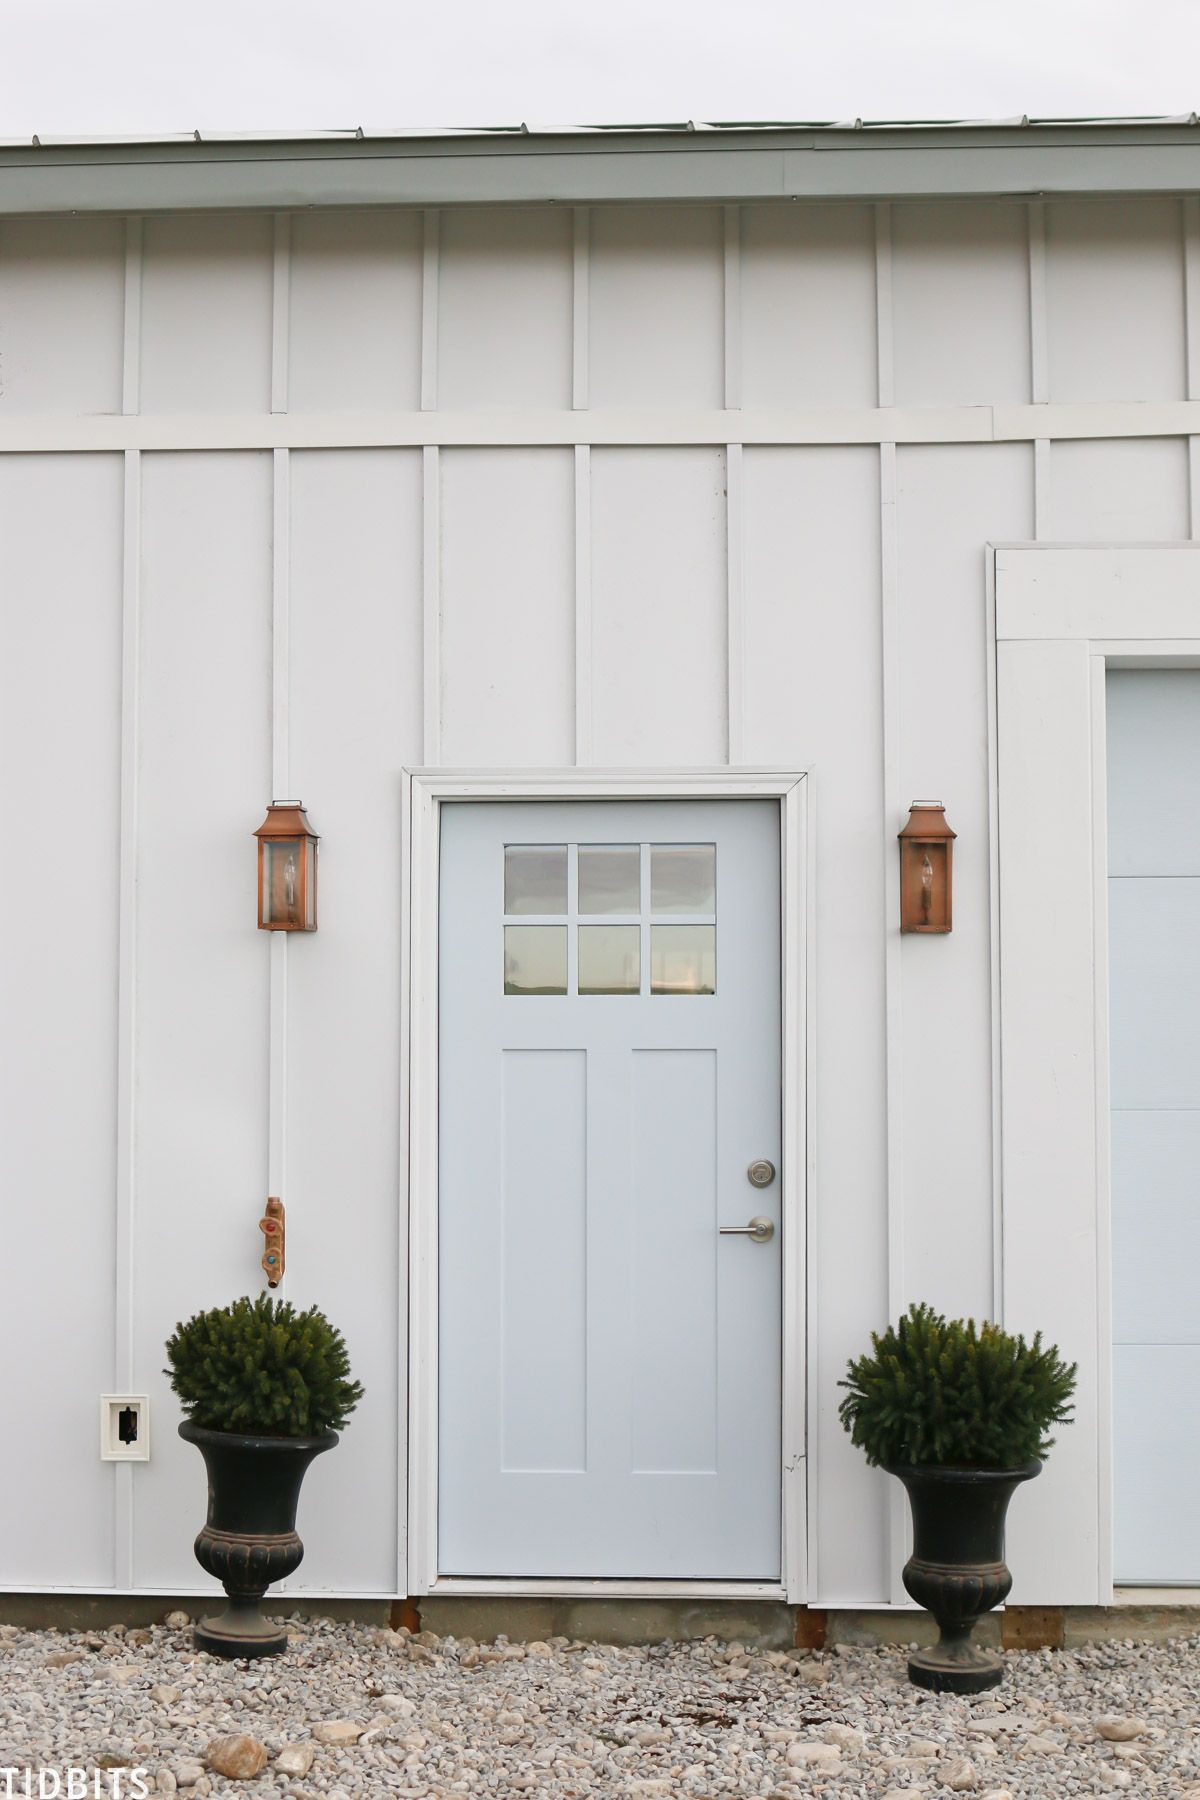 Garage Curb Appeal Design Ideas. It was time to add some garage curb appeal to our new pole barn home. In this process post, we've added our steel siding, steel roofing, painted our garage doors, added light fixtures and more. Let me show you! #garagedesign #garage #curbappeal #garagecurbappeal #camitidbits #homeexterior #steelsiding #steelroofing